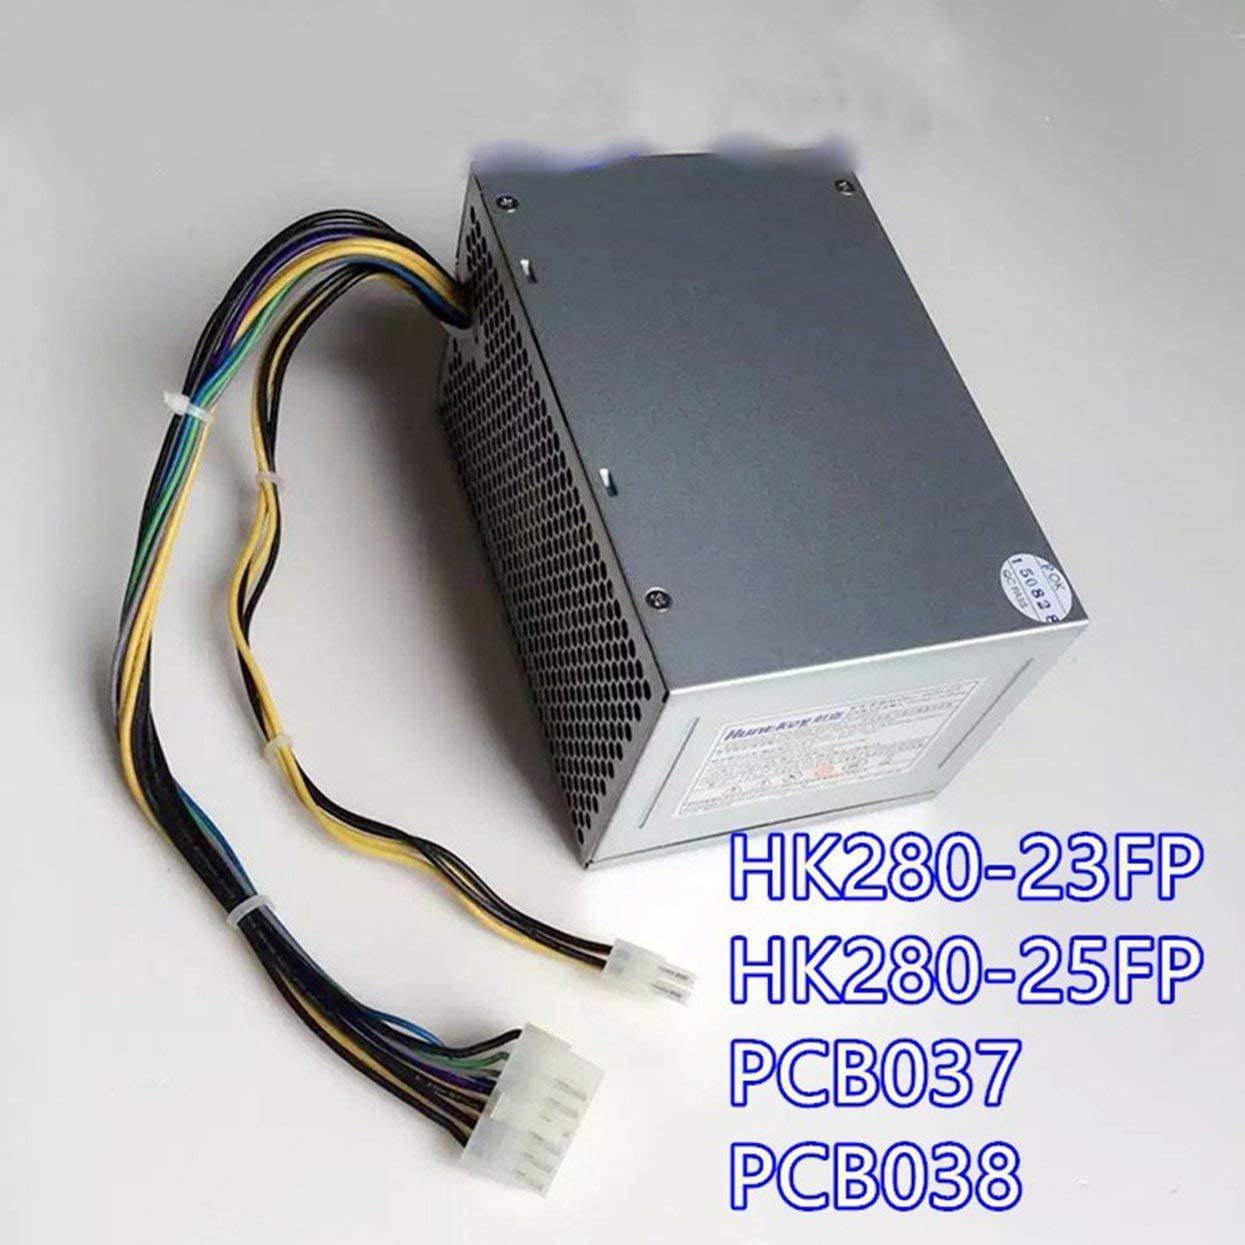 HK280-25FP PCB037 PCB038 for Lenovo 14-pin 180W power supply HK280-23FP